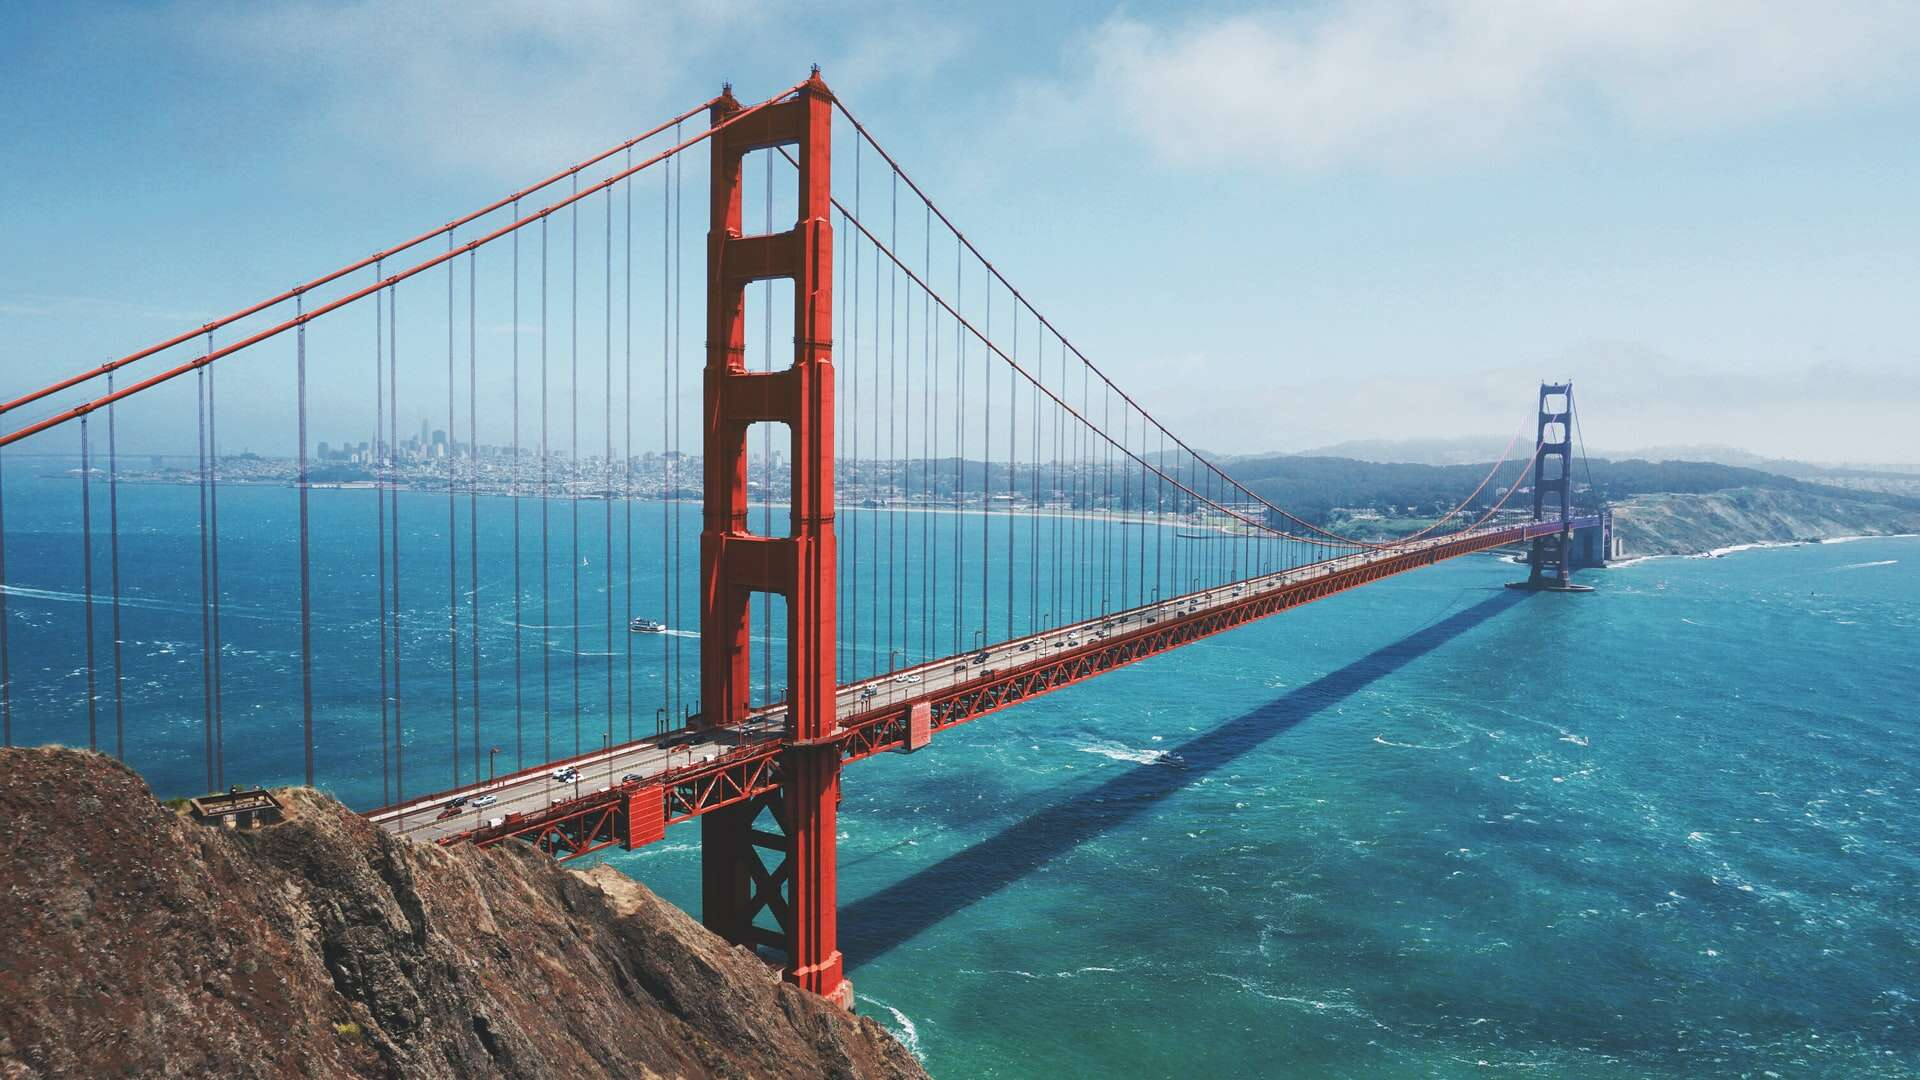 Collette - Save up to $200 off Tours in the US!